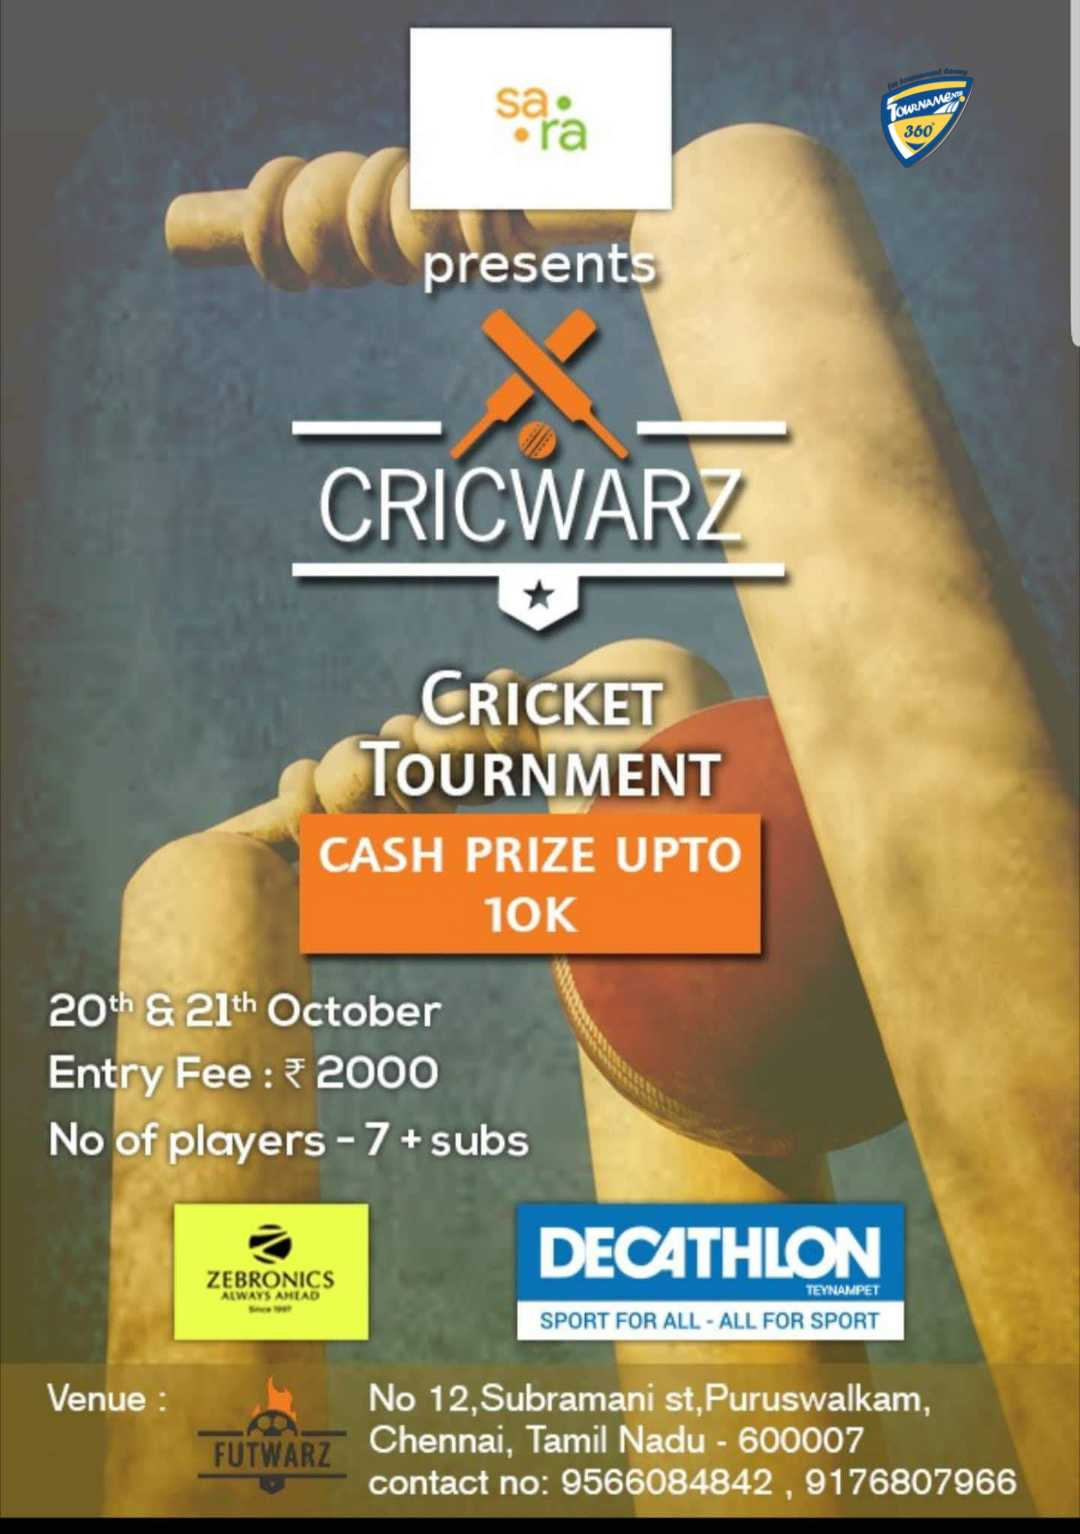 Cricwarz Cricket Tournament